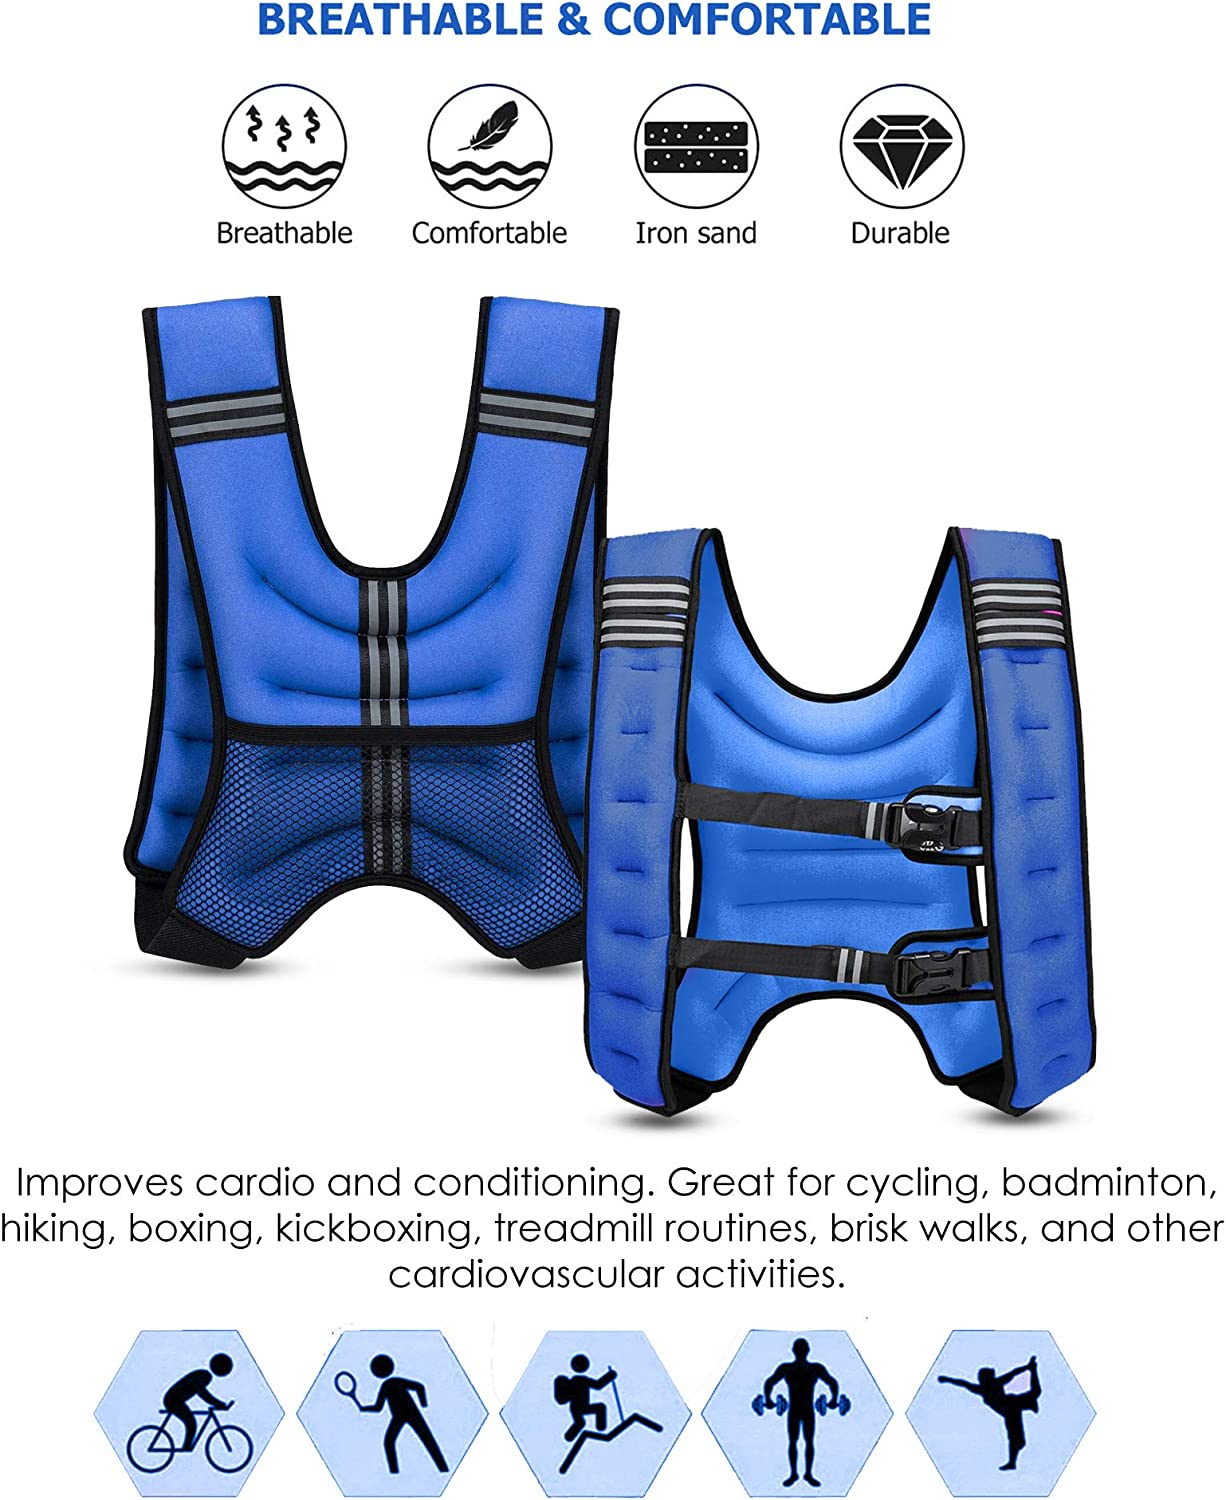 XN8 Weighted Vest Adjustable Jacket Running Strength Fitness Training 3.5-10Kg